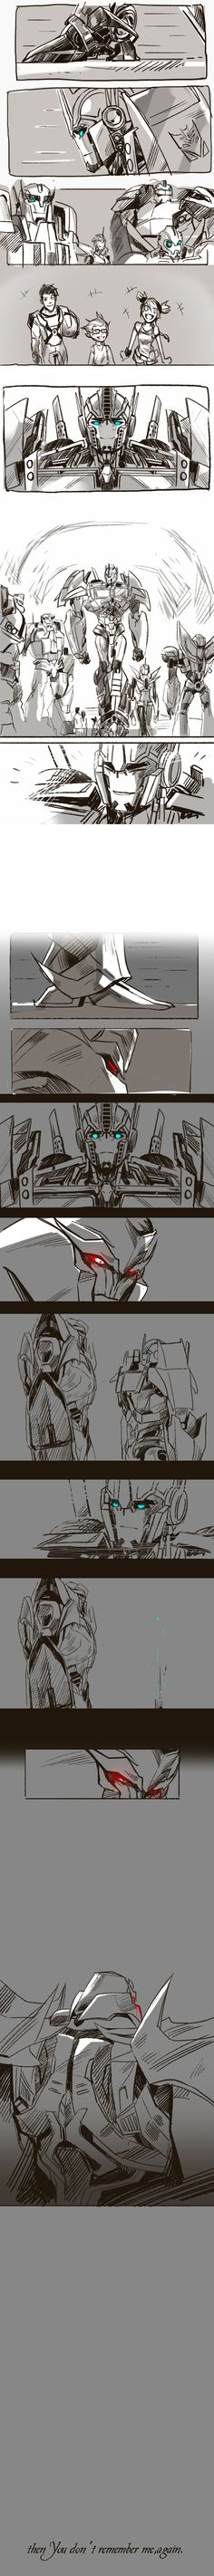 Prime Ep29-2 by evilwinnie on deviantART this almost made me cry.